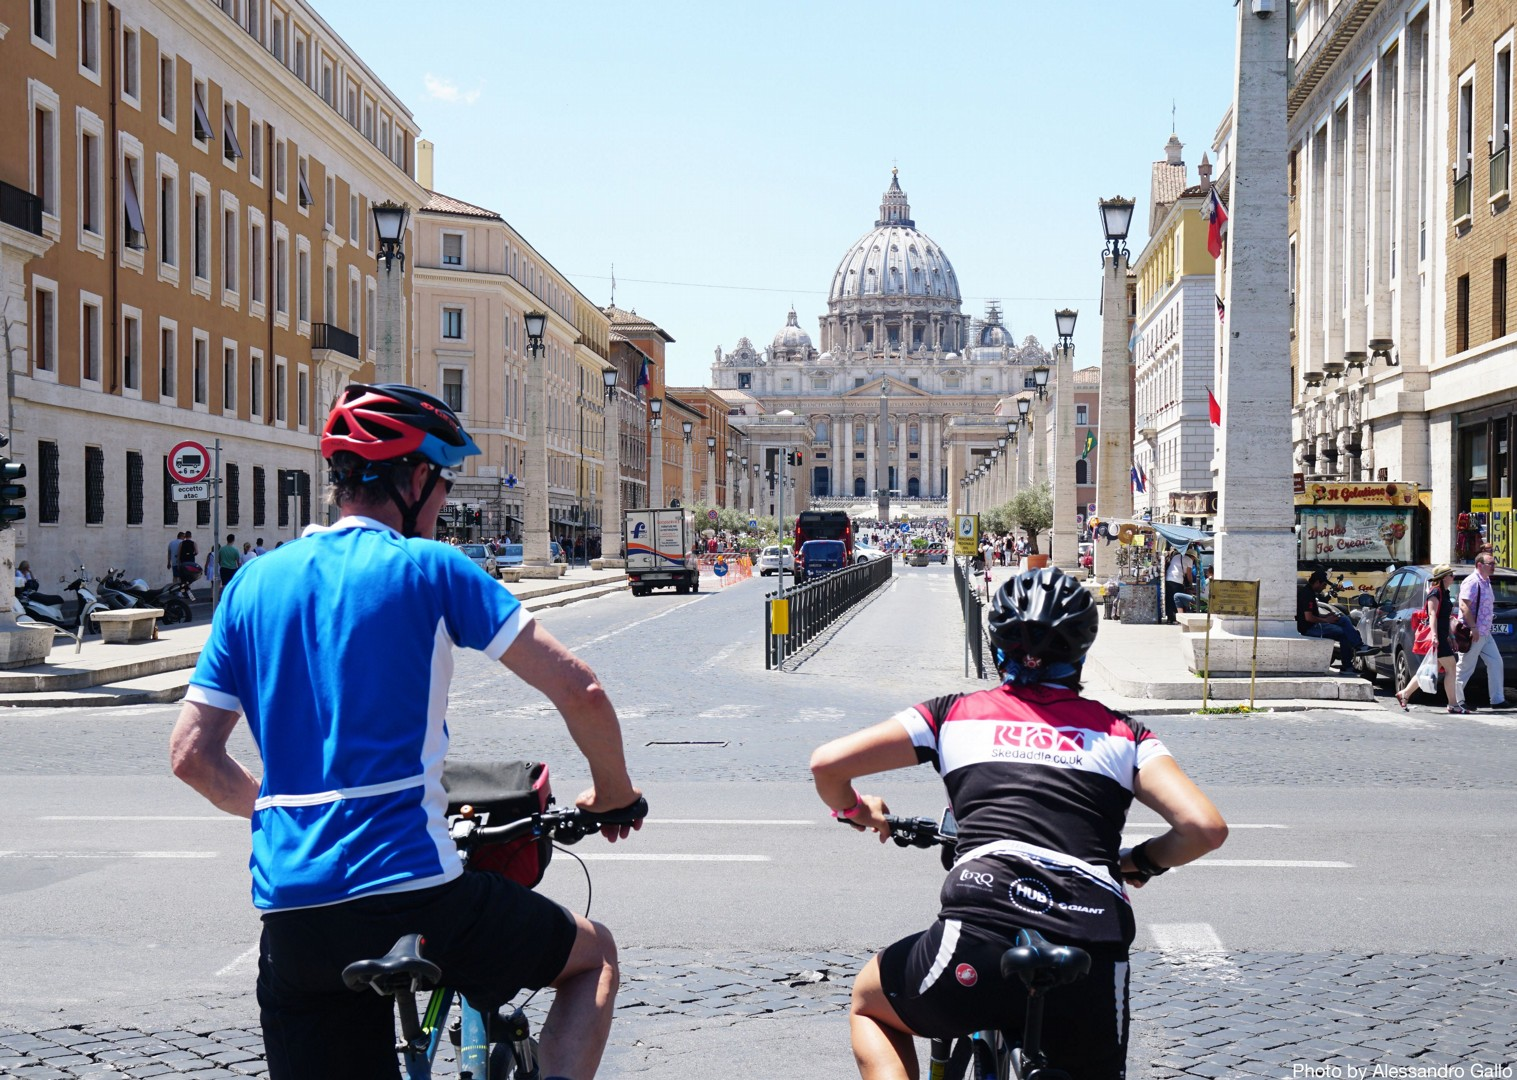 Italy-Via-Francigena-Tuscany-to-Rome-Guided-Leisure-Cycling-Holiday-Vatican - Italy - Via Francigena (Tuscany to Rome) - Guided Leisure Cycling Holiday - Leisure Cycling